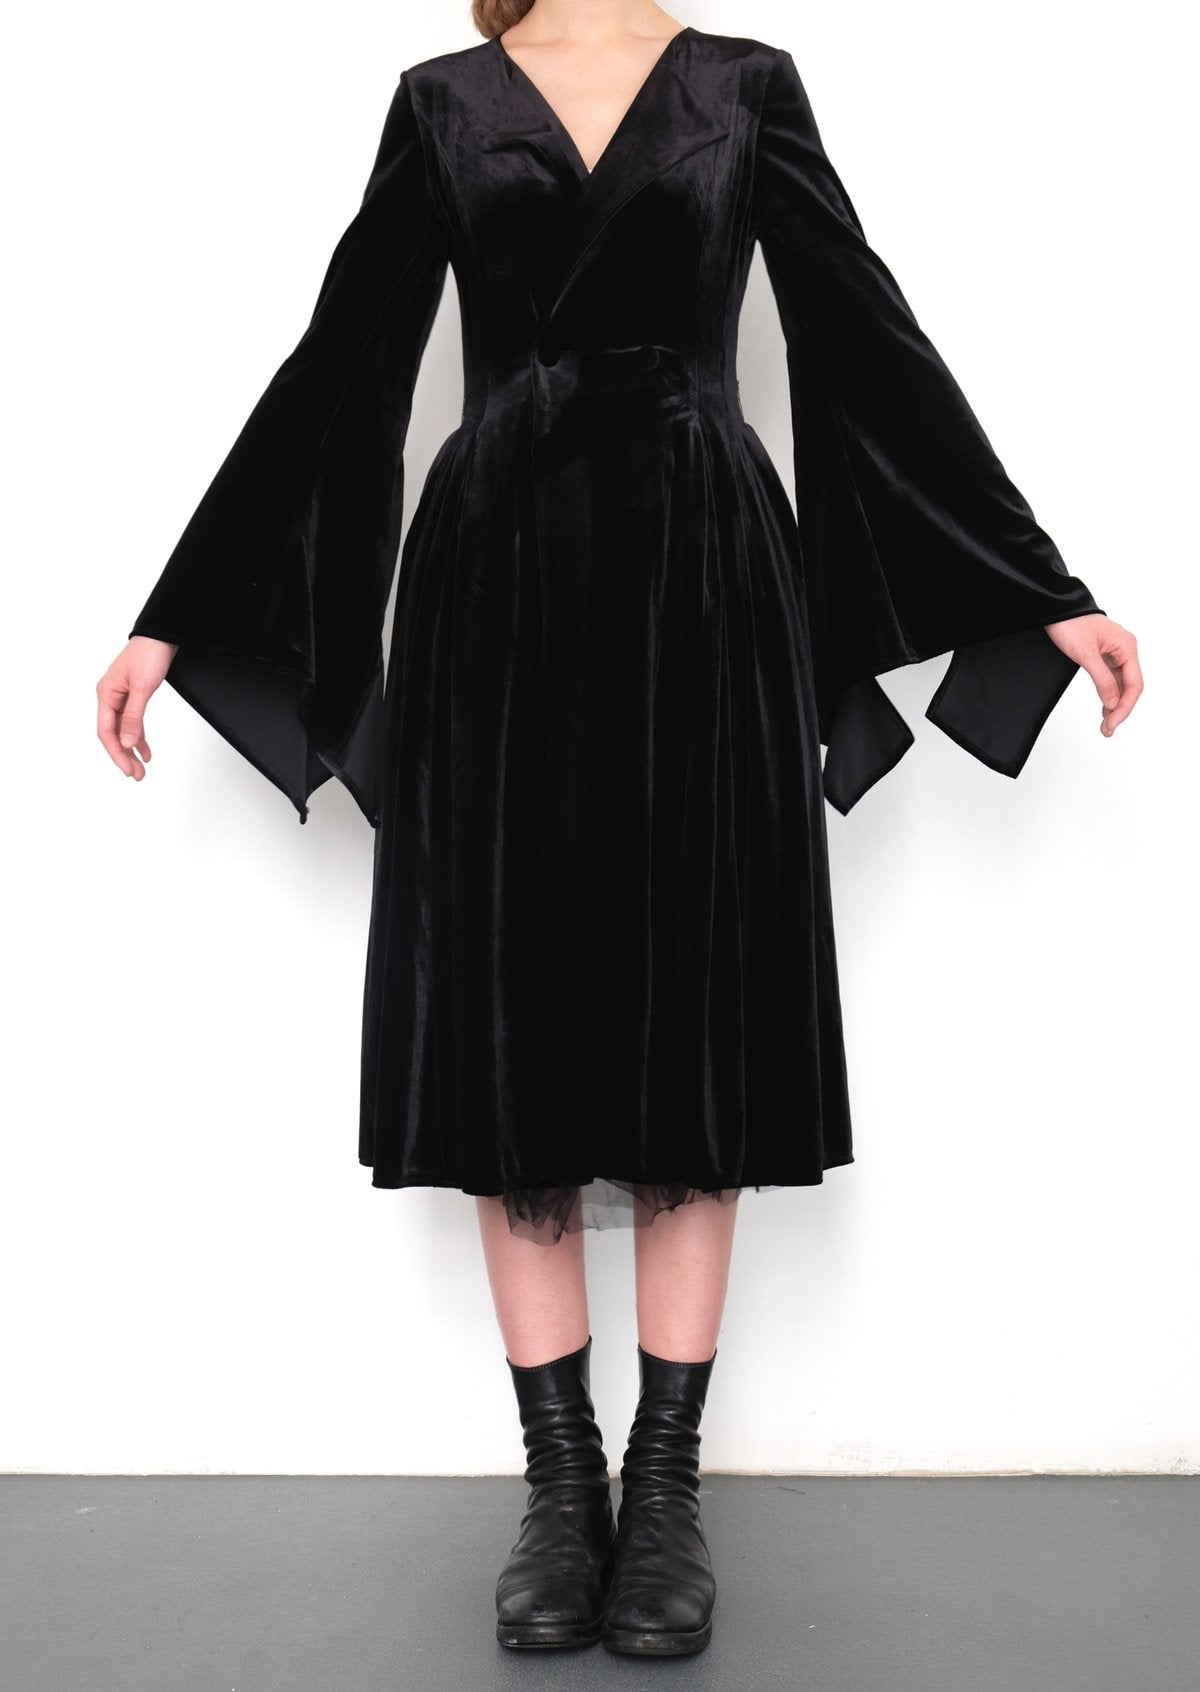 Image of SS1804 - Ruffle Cuff Sleeve Dress & Coat